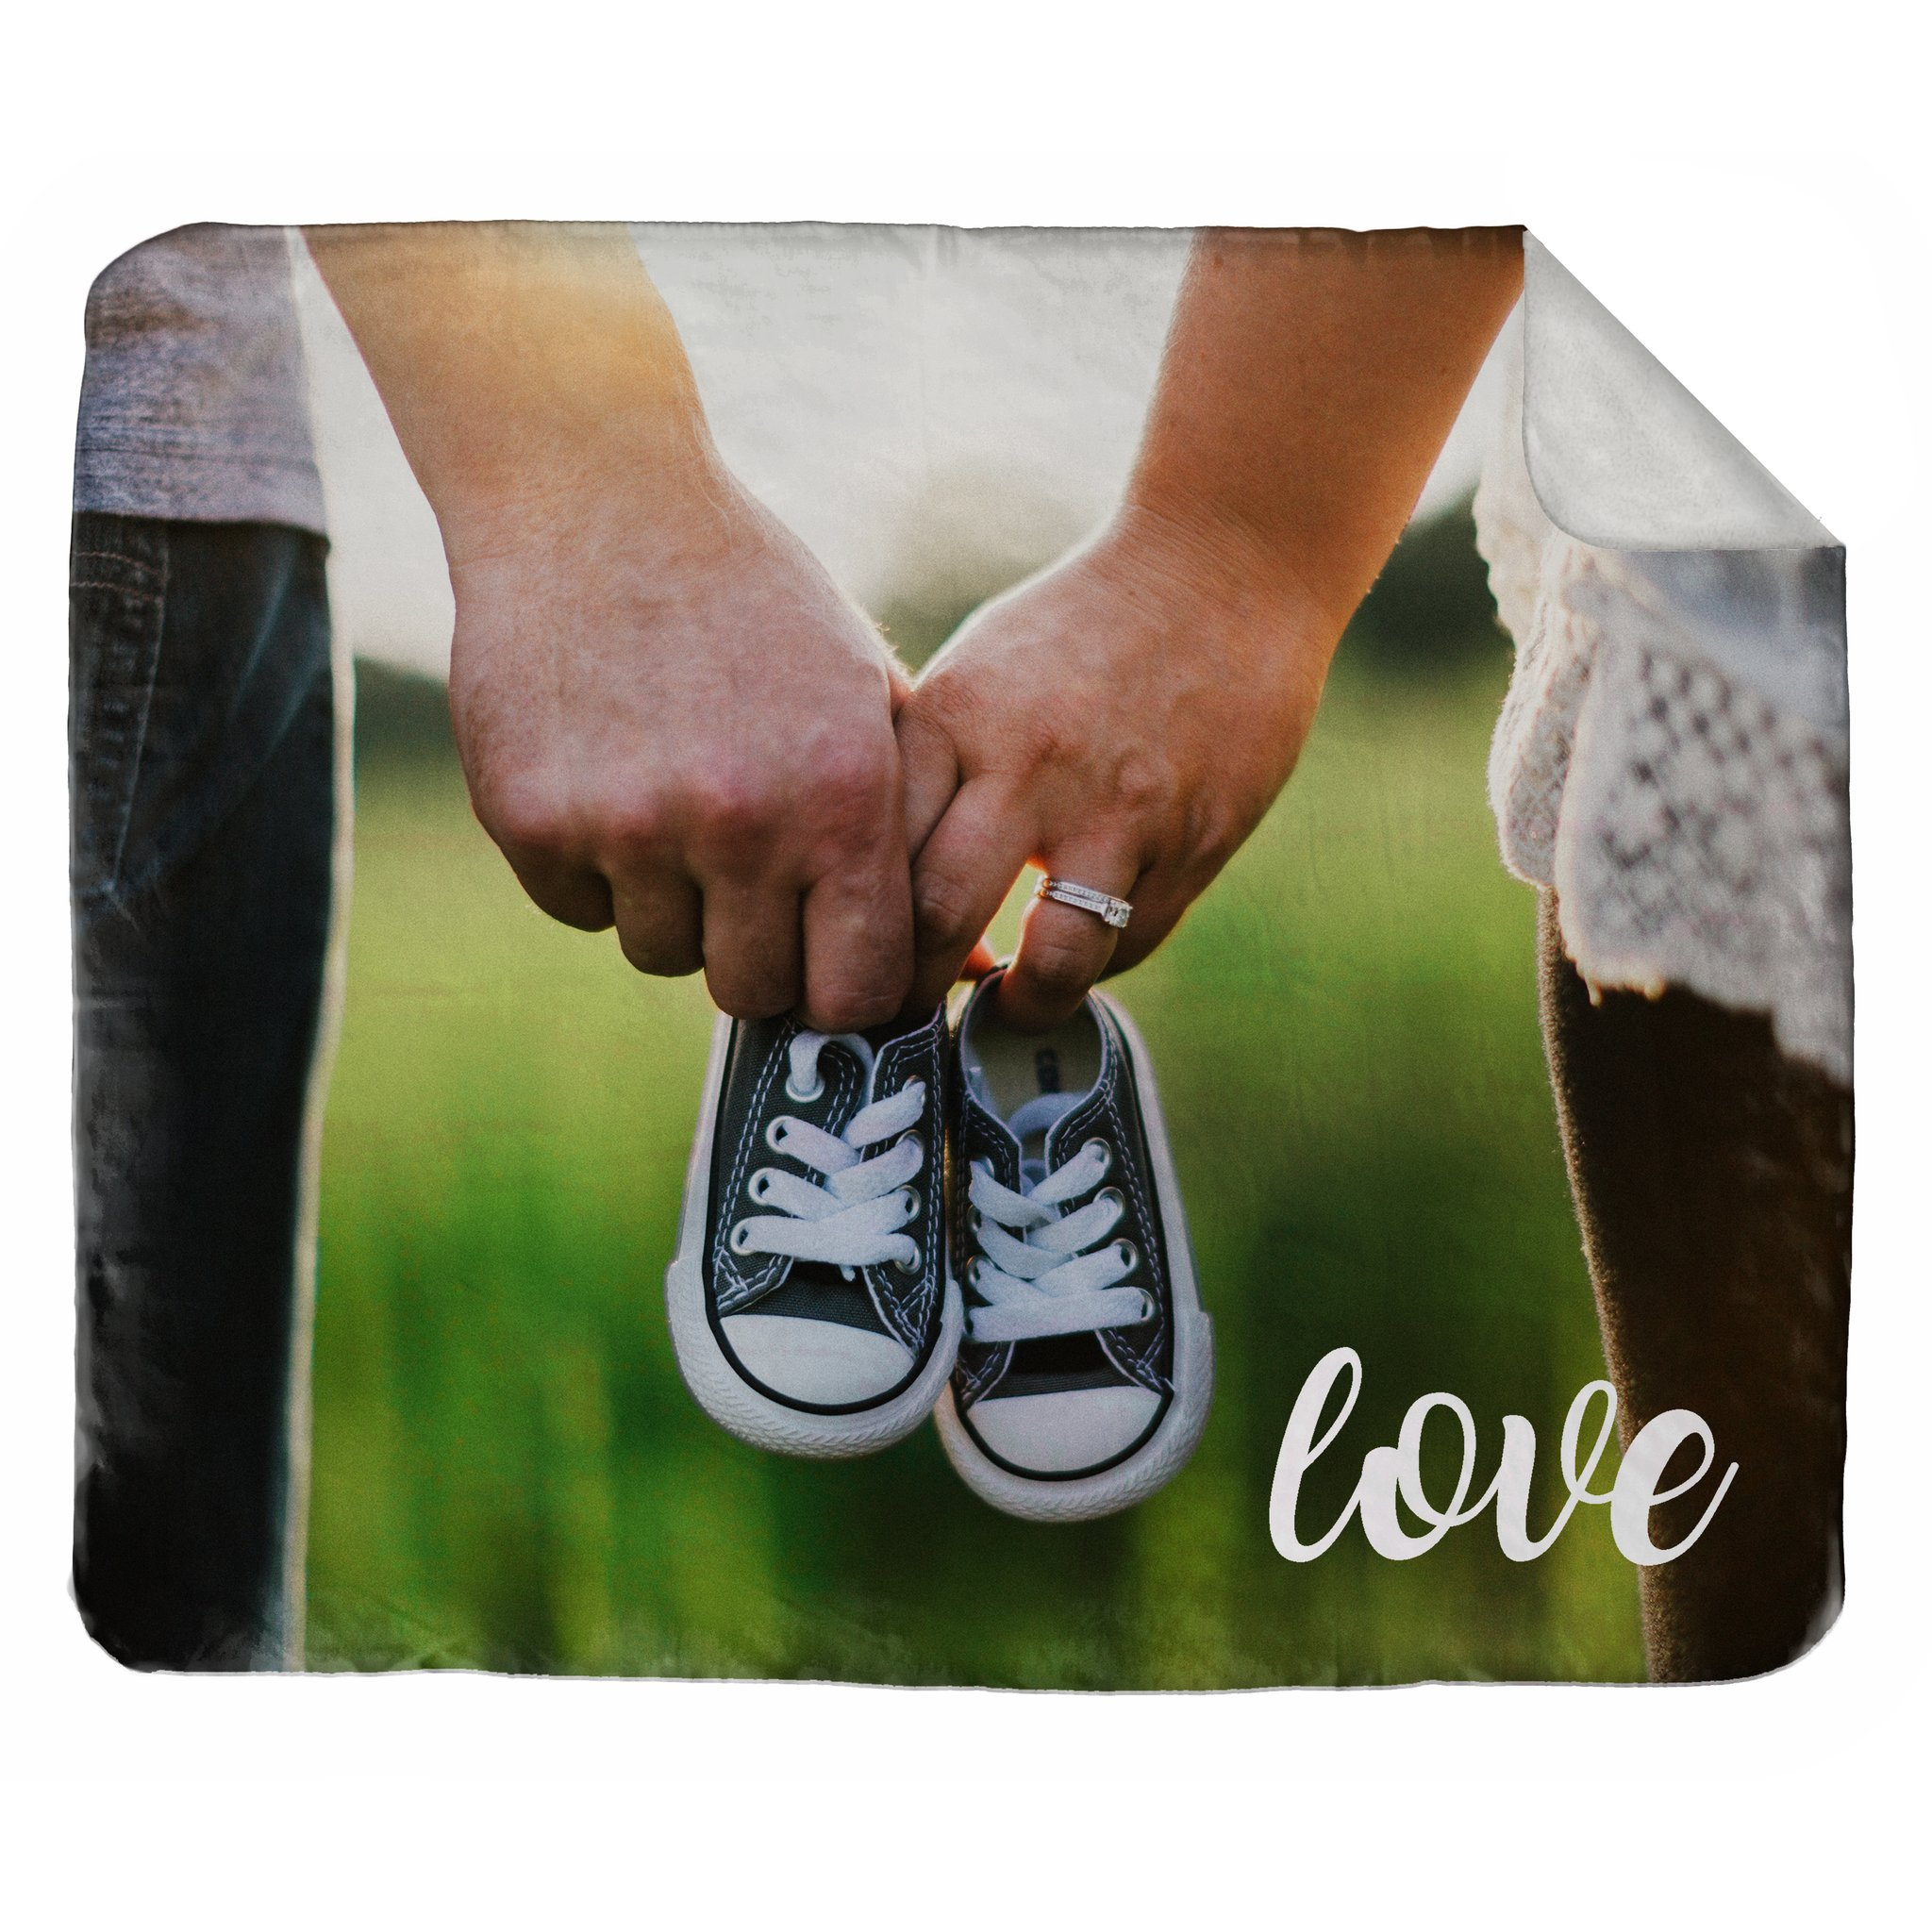 Personalized photo blanket featuring couple holding hands and baby shoes